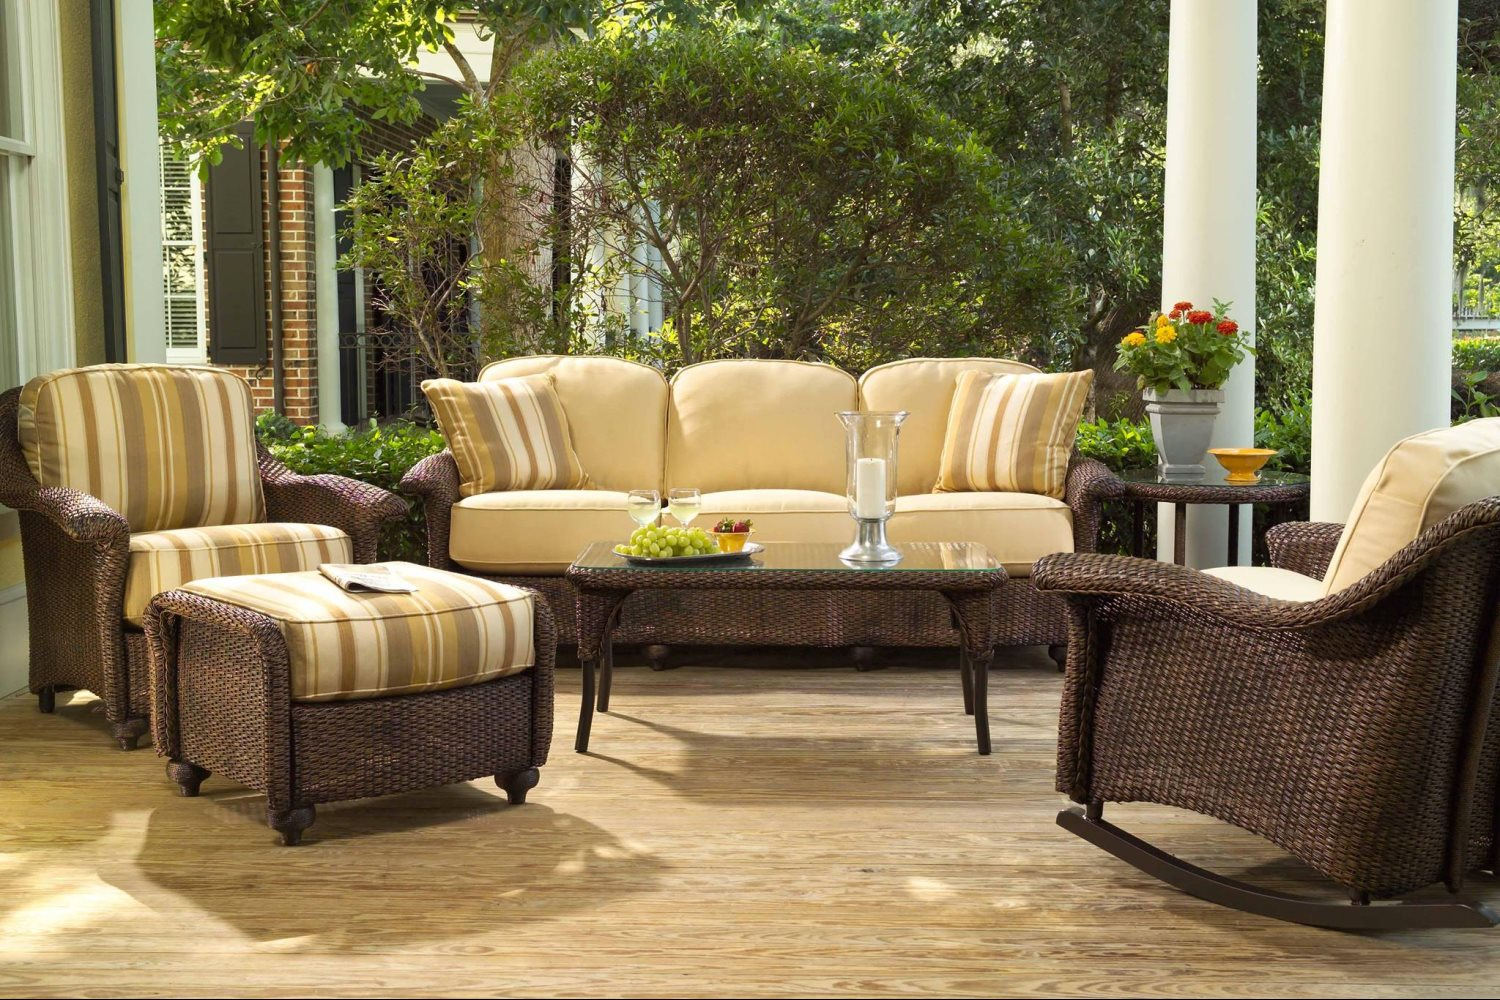 Patio furniture outdoor seating dining patio for Exterior furniture